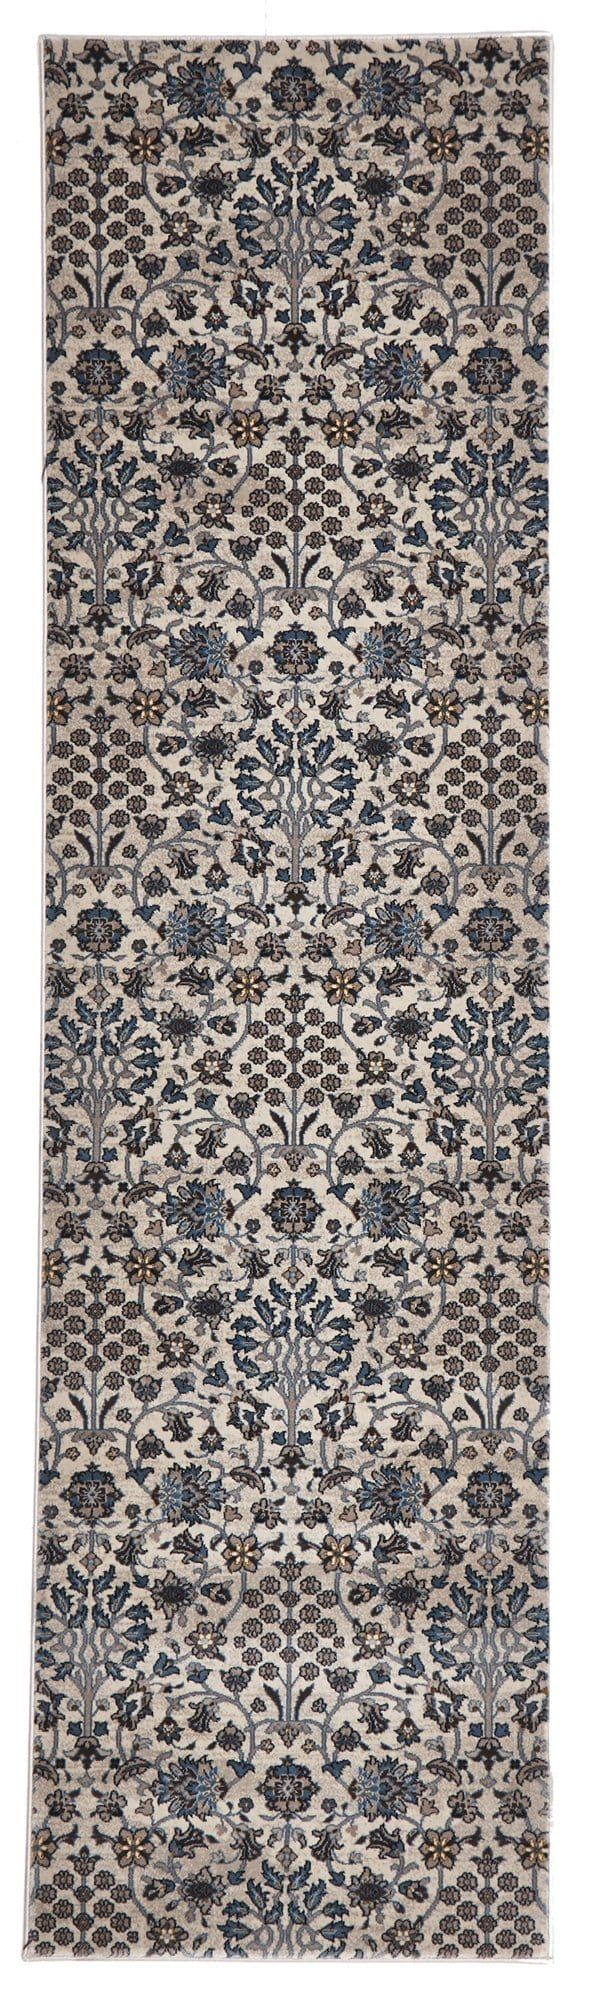 Bursa Ivory & Blue Intricate Floral Turkish Runner Rug